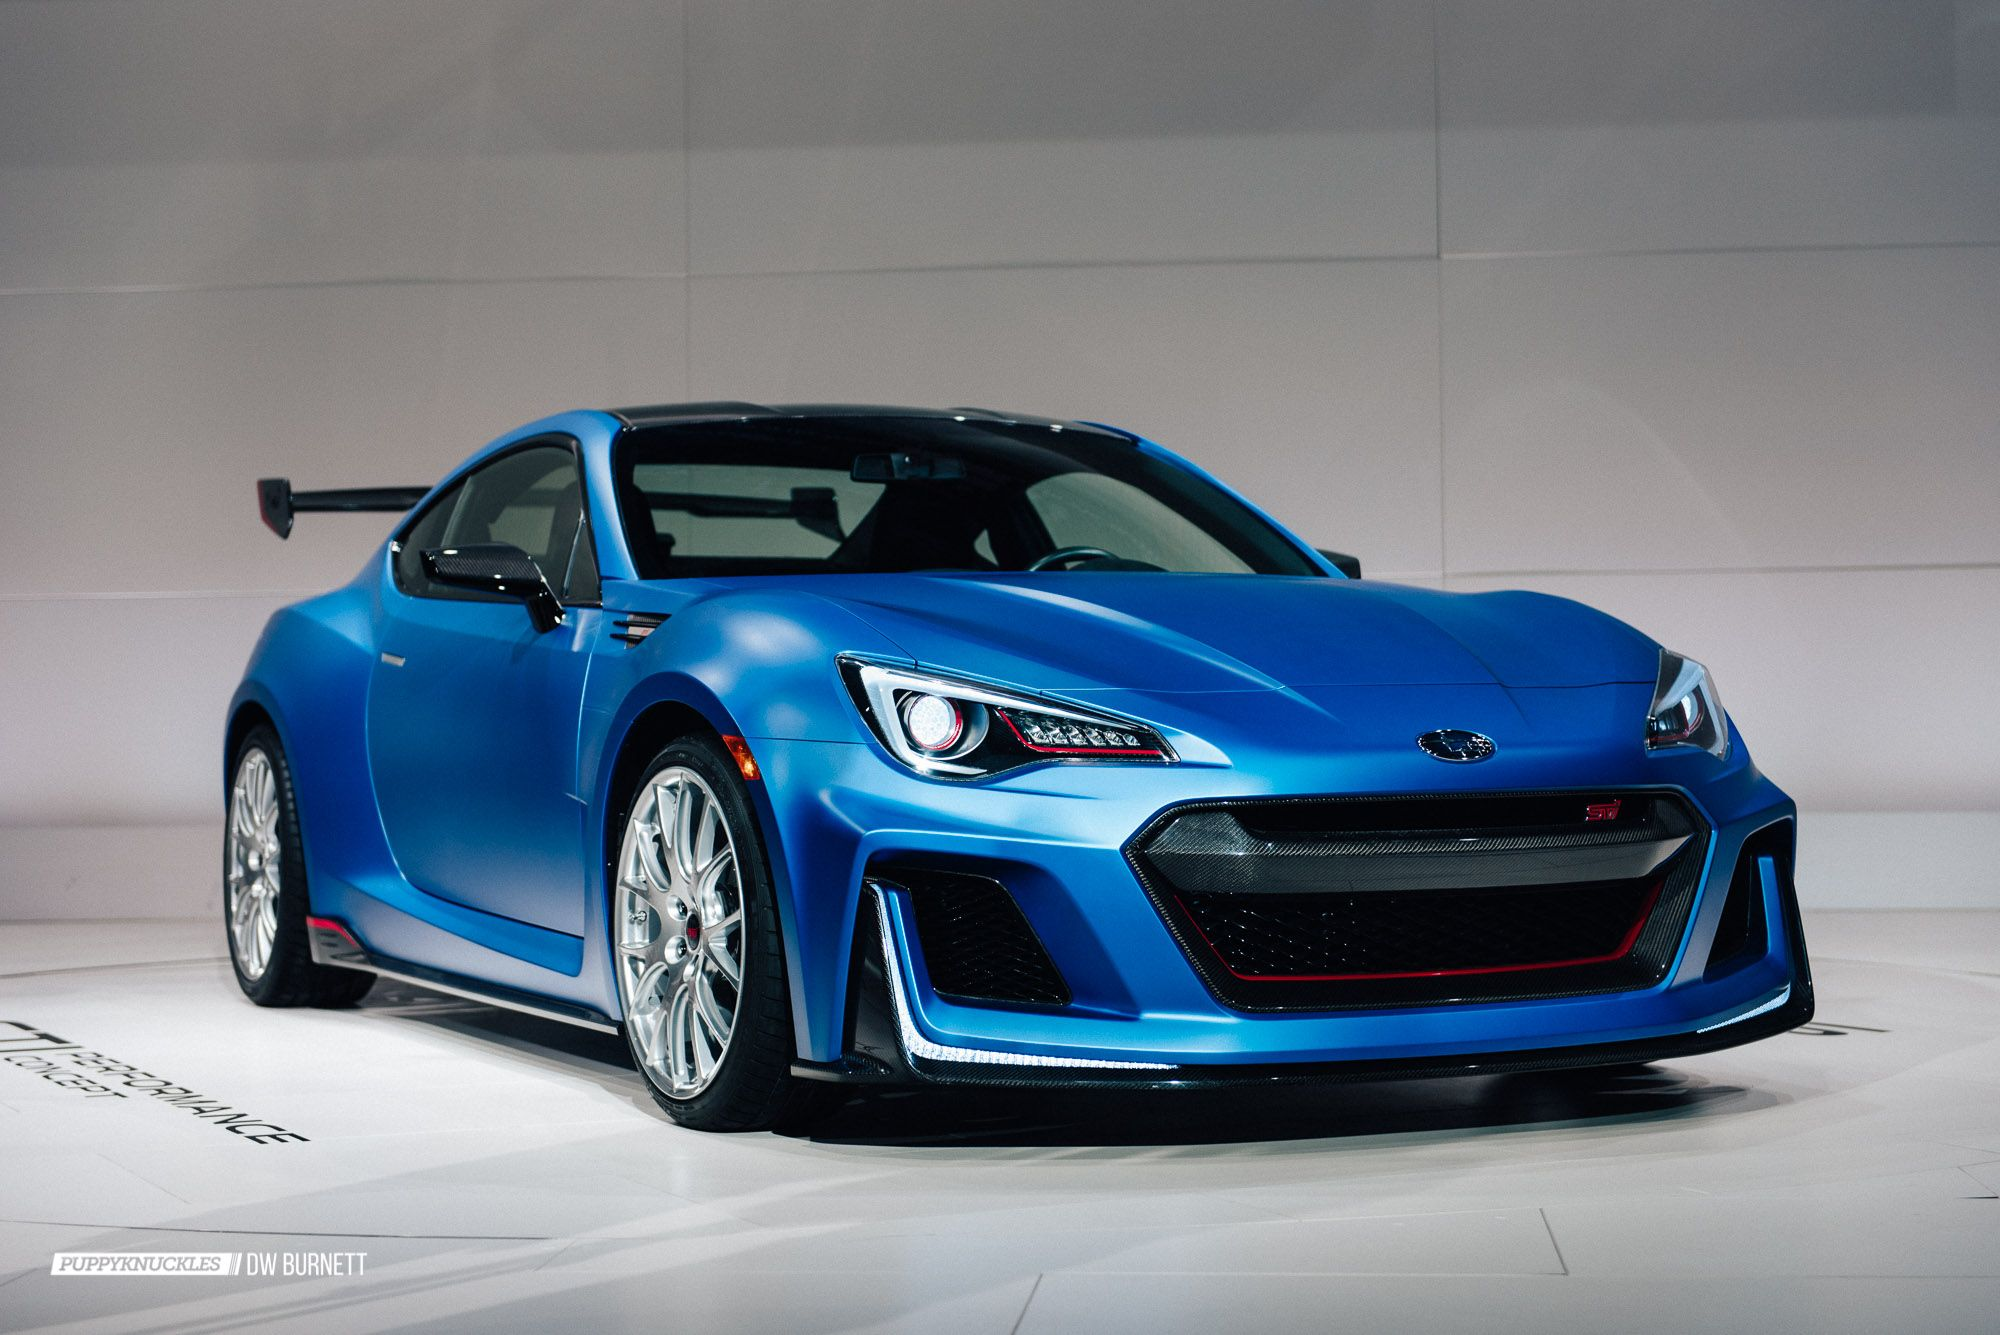 The Subaru Brz Sti Performance Concept Is A Little Monster Puppyknuckles Subaru Brz Sti Subaru Brz Subaru